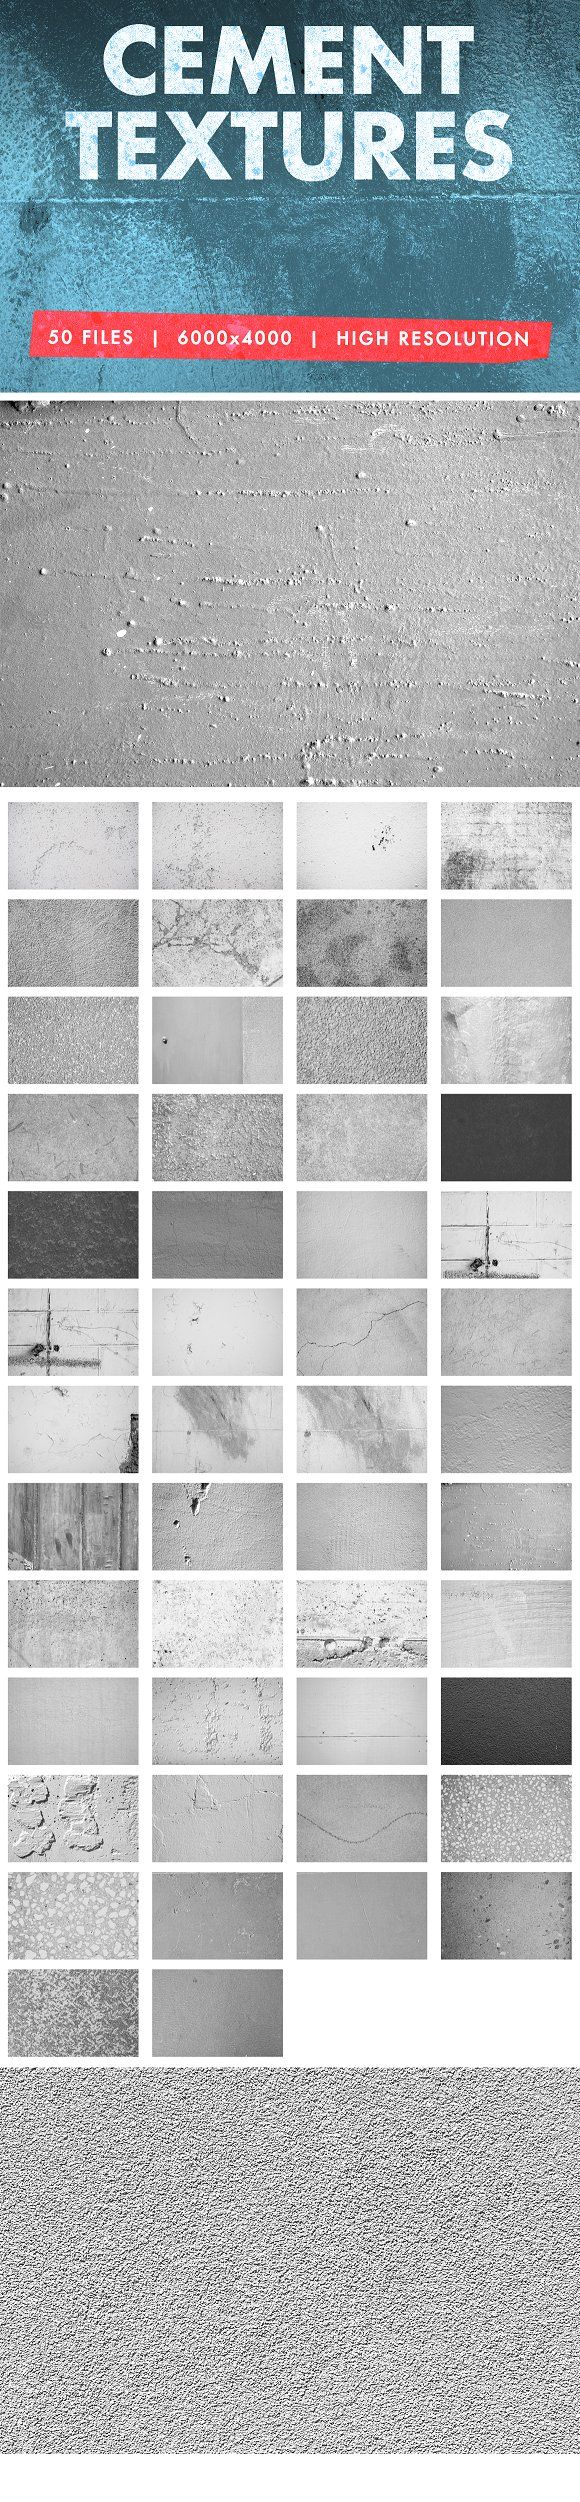 Free for a limited time!  Cement Textures Pack by Hugh Adams on @creativemarket  design, graphic, photoshop, jpg, background, ad, affiliate